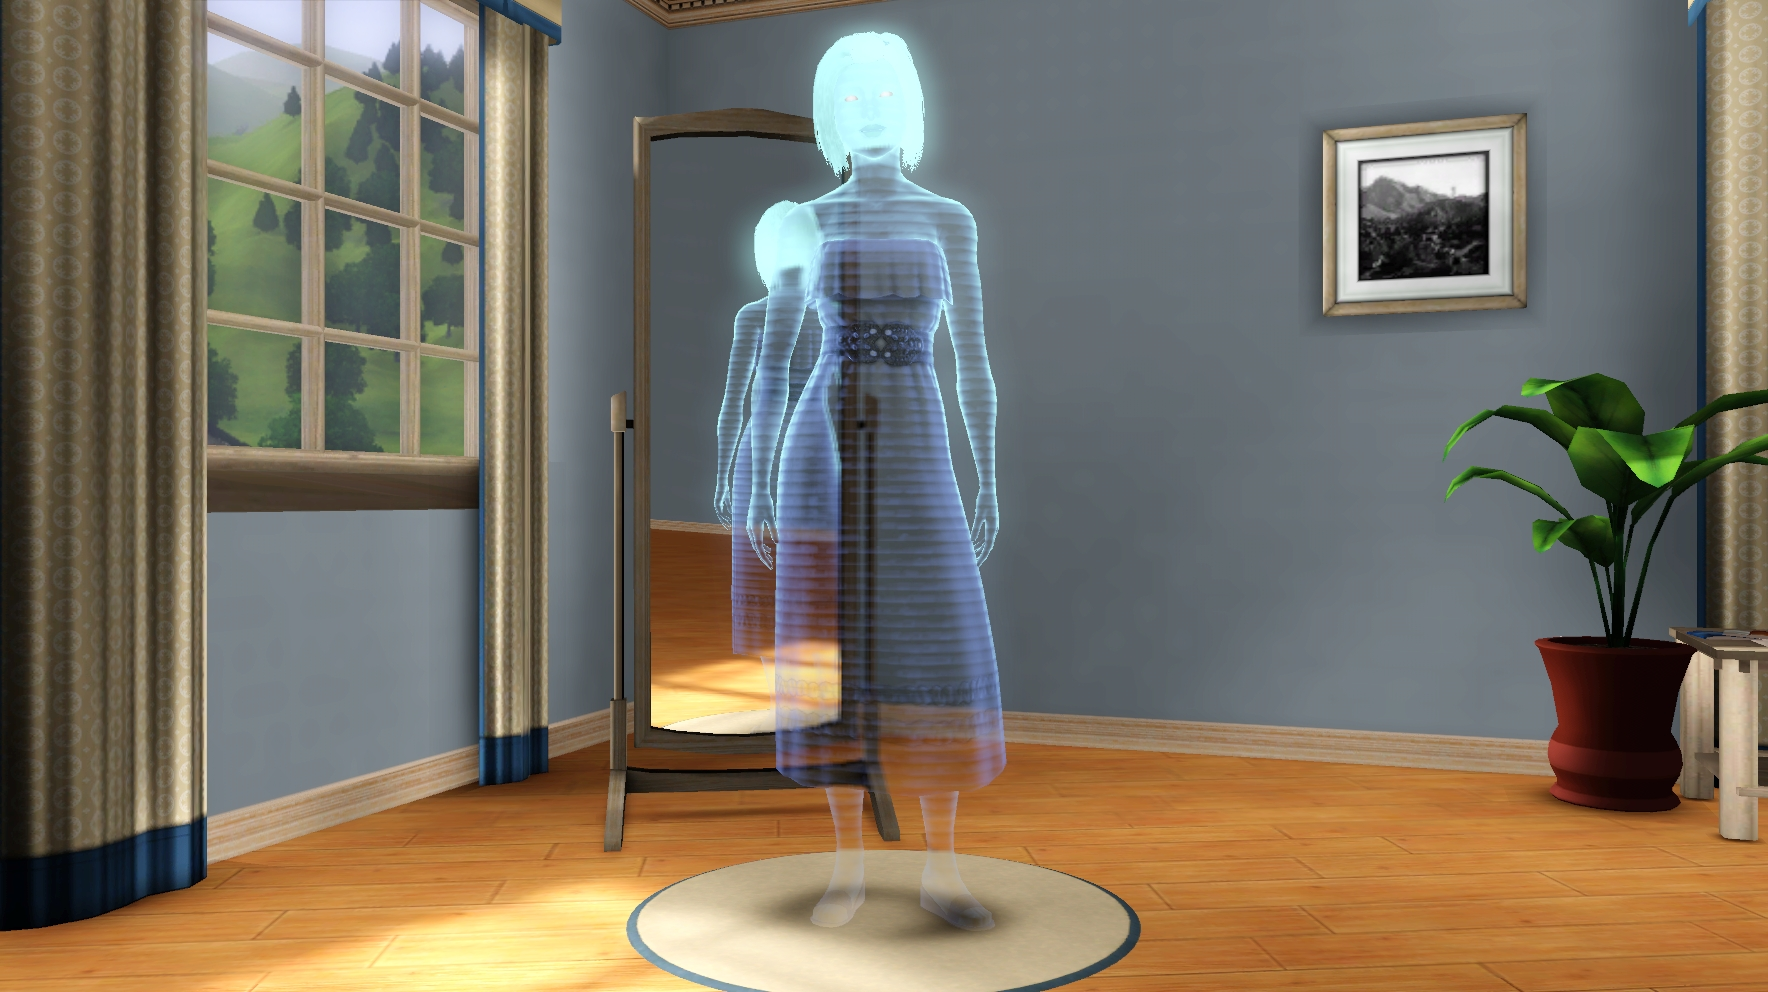 Sims 3 Patch 1 63: New Features & Options   SimsVIP